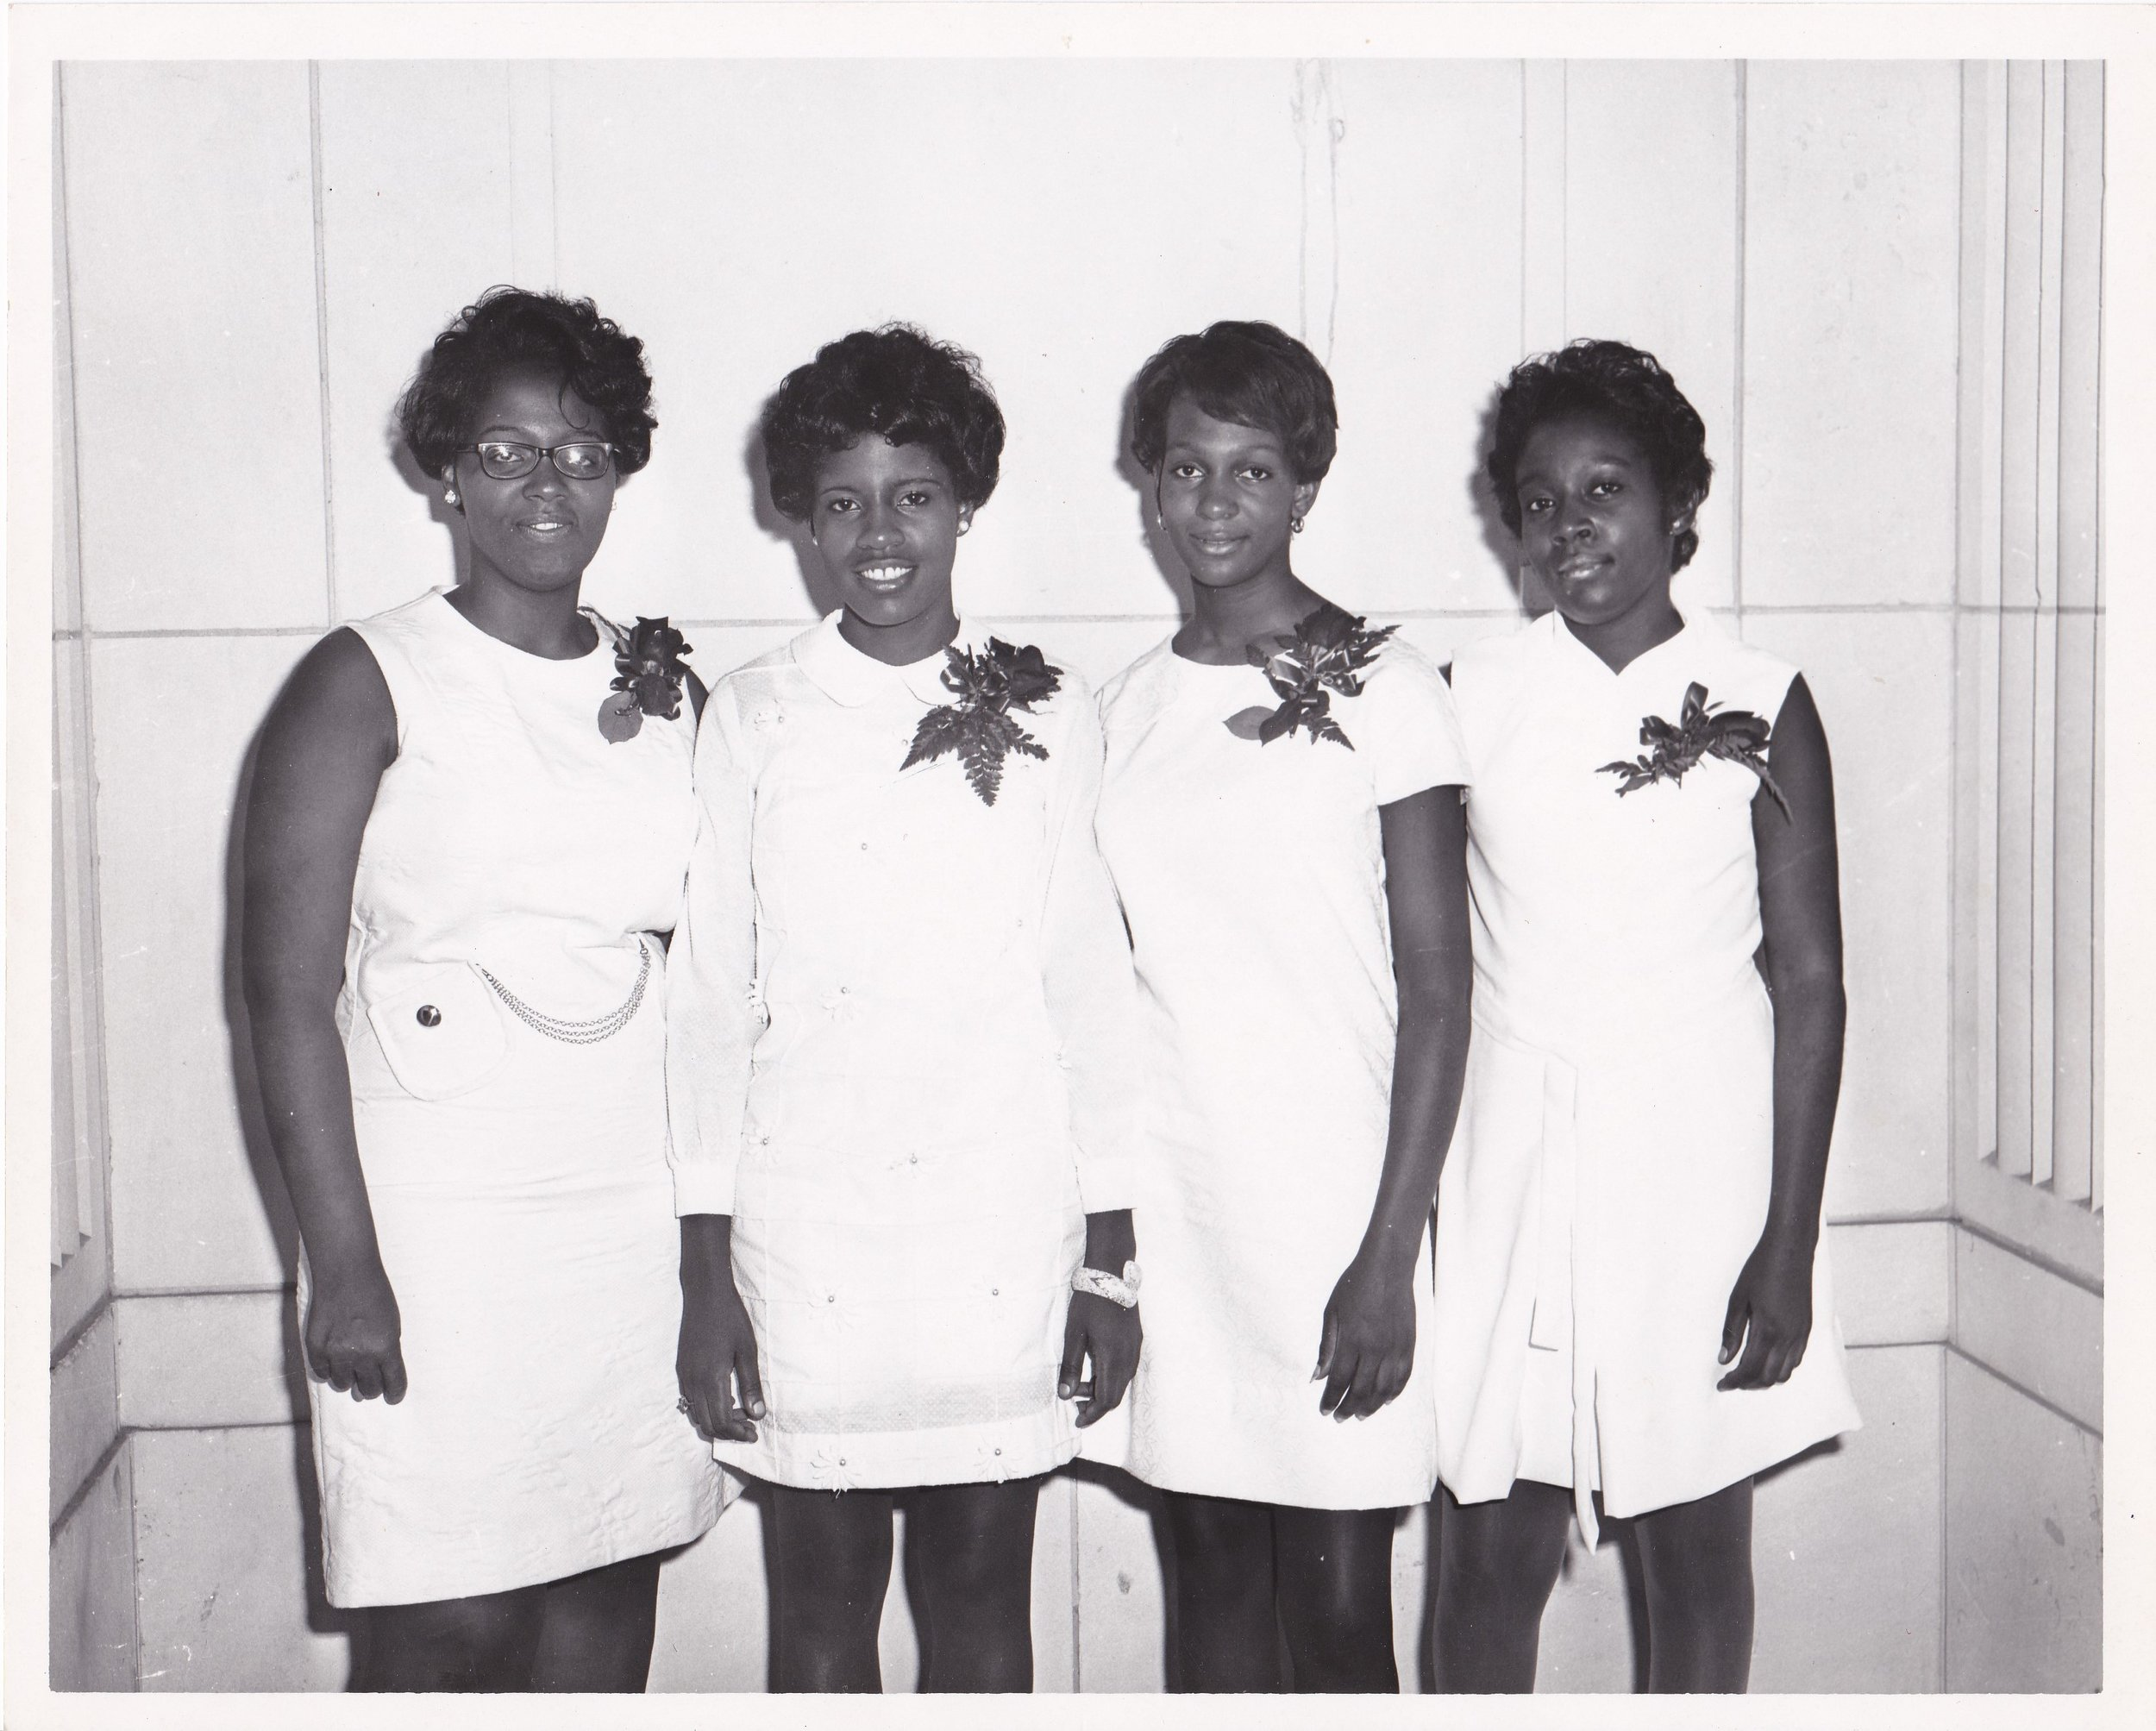 L. Vee McGee, second from the left. 1970